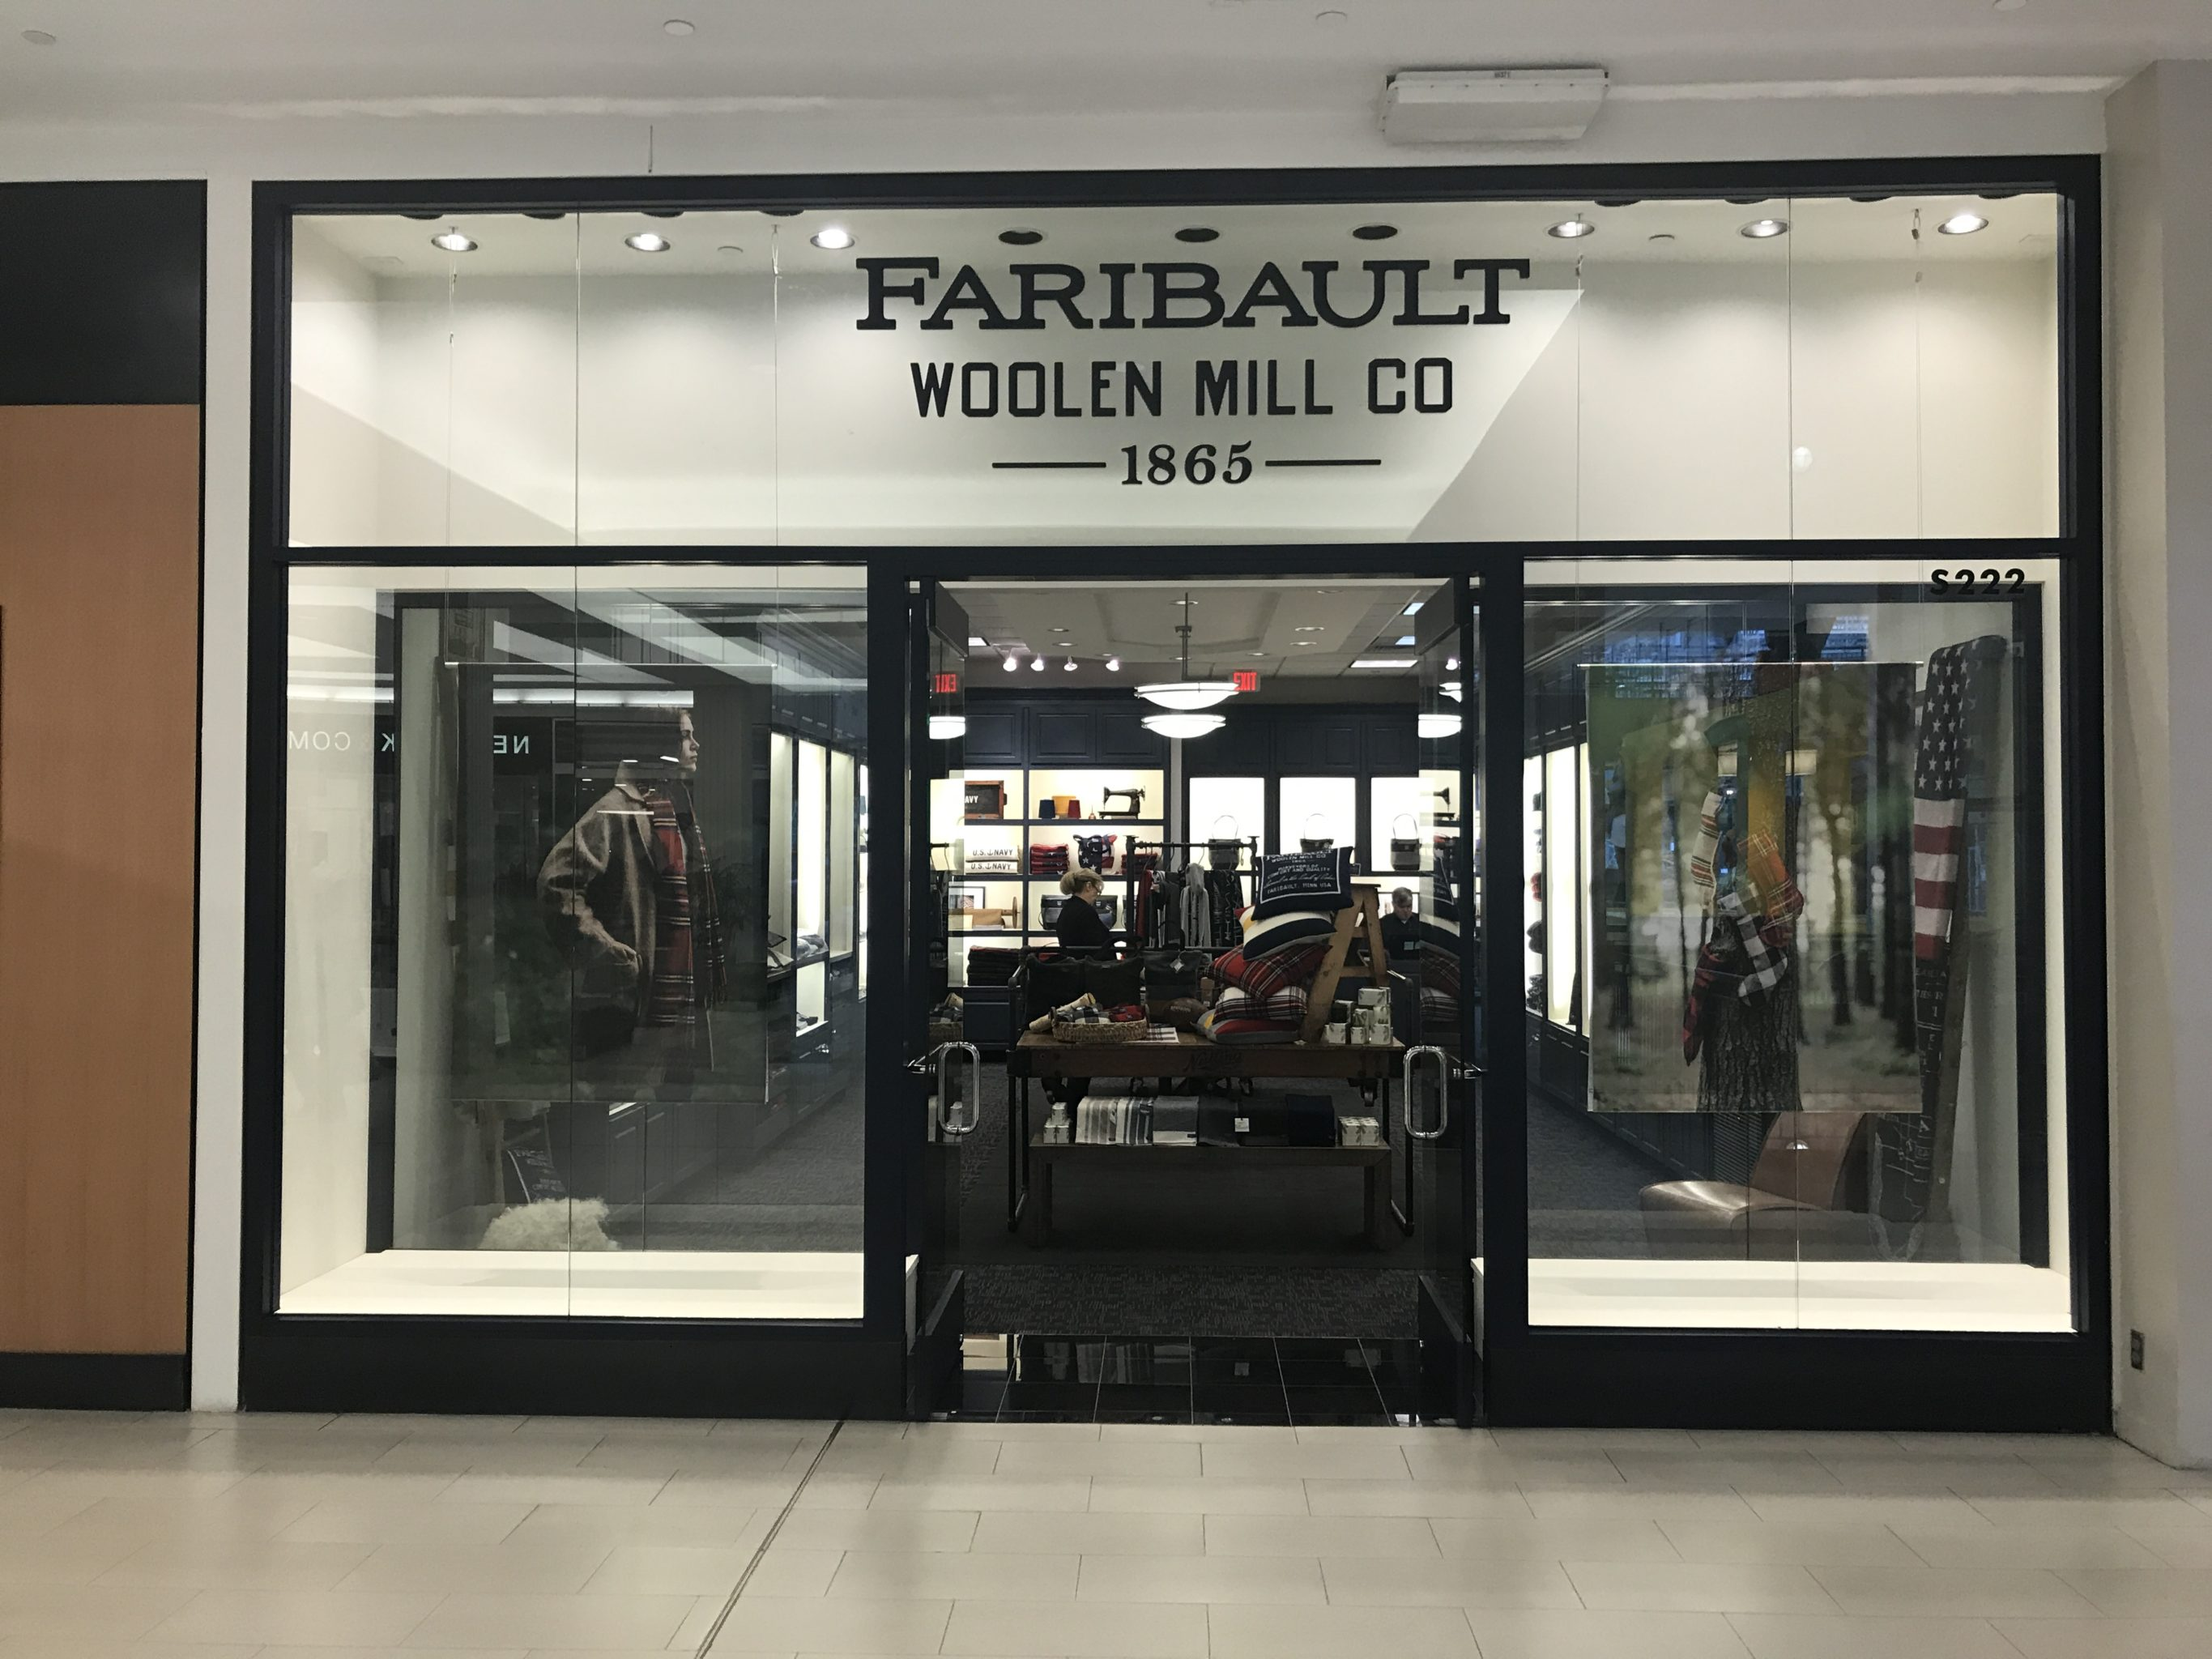 Modish Time Holiday Faribault Woolen Mill Has Opened Shop At During Next Few Shoppers Can Faribault Woolen Mill Opens At Mall America Midwest Home Just houzz-03 Faribault Woolen Mills